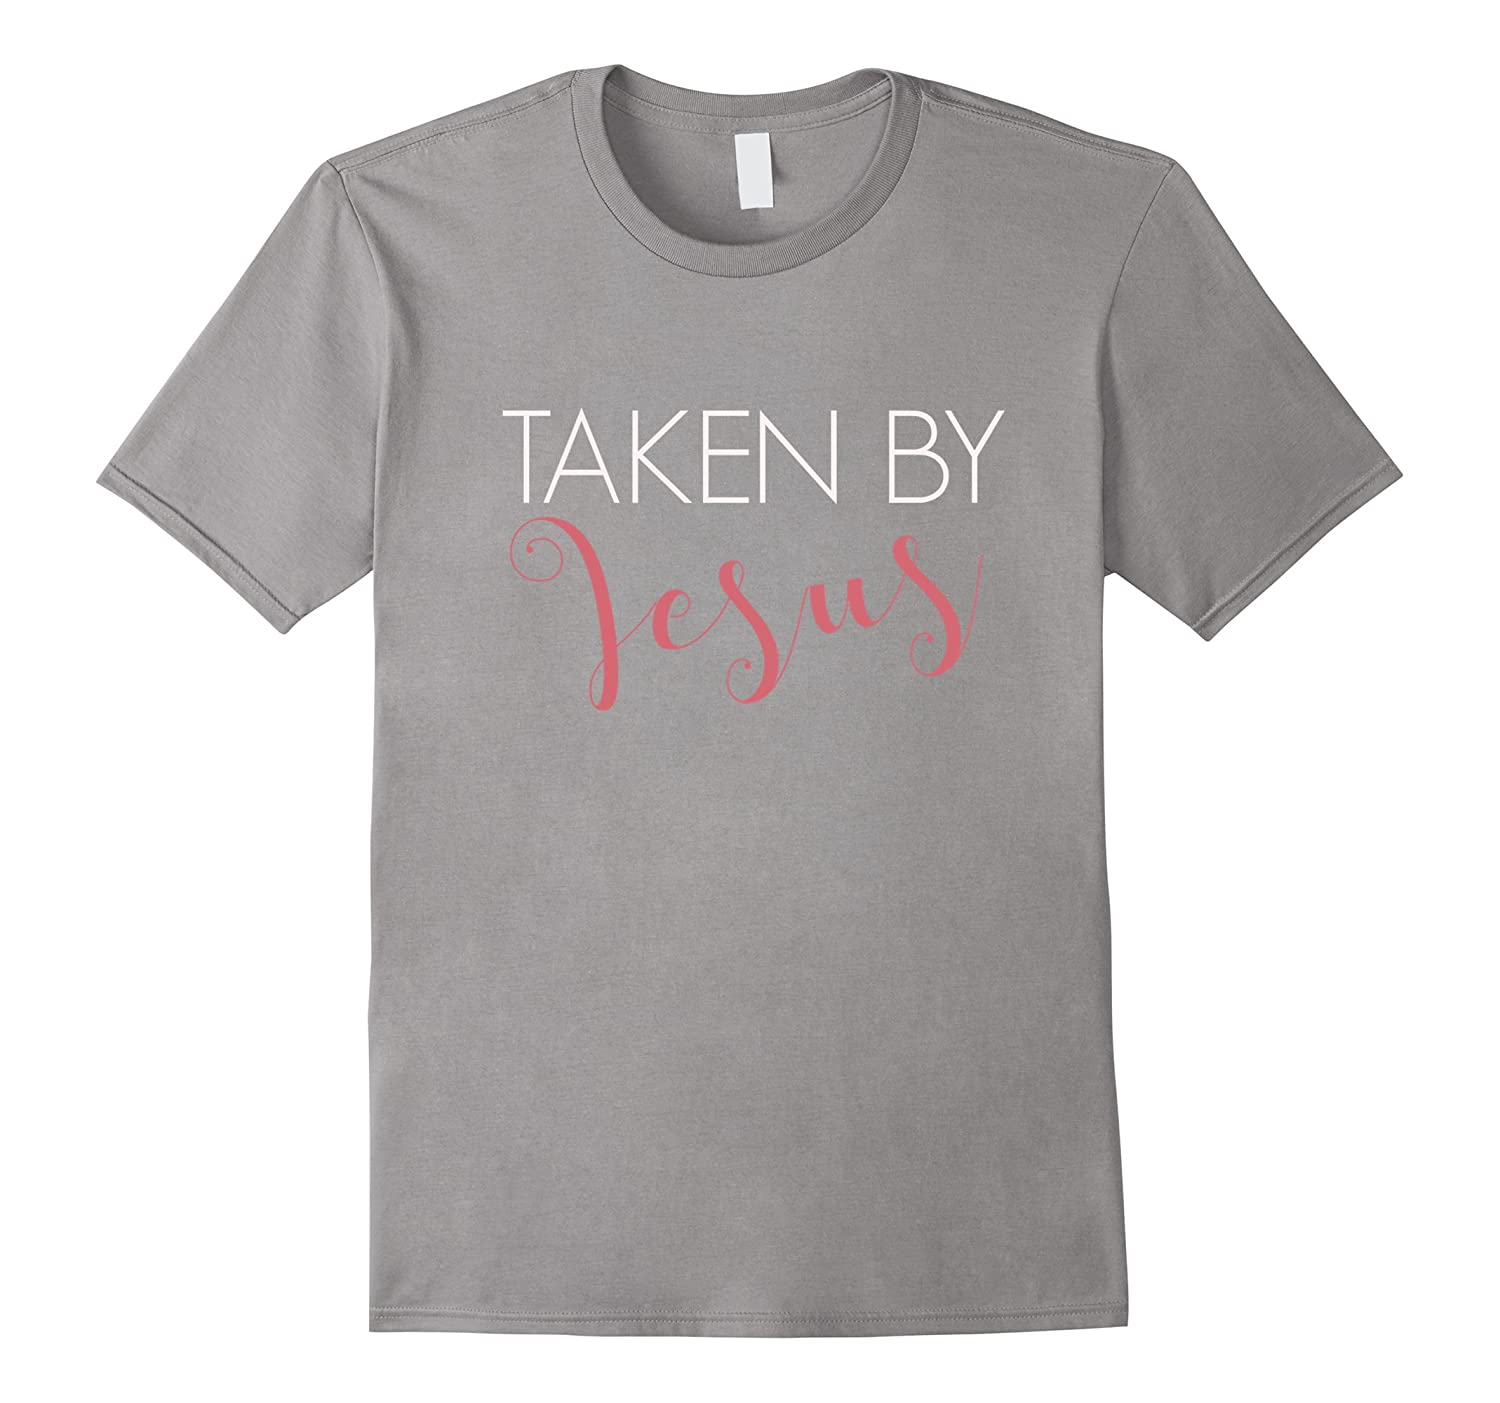 Christian Love and Grace T-Shirt – Taken By Jesus